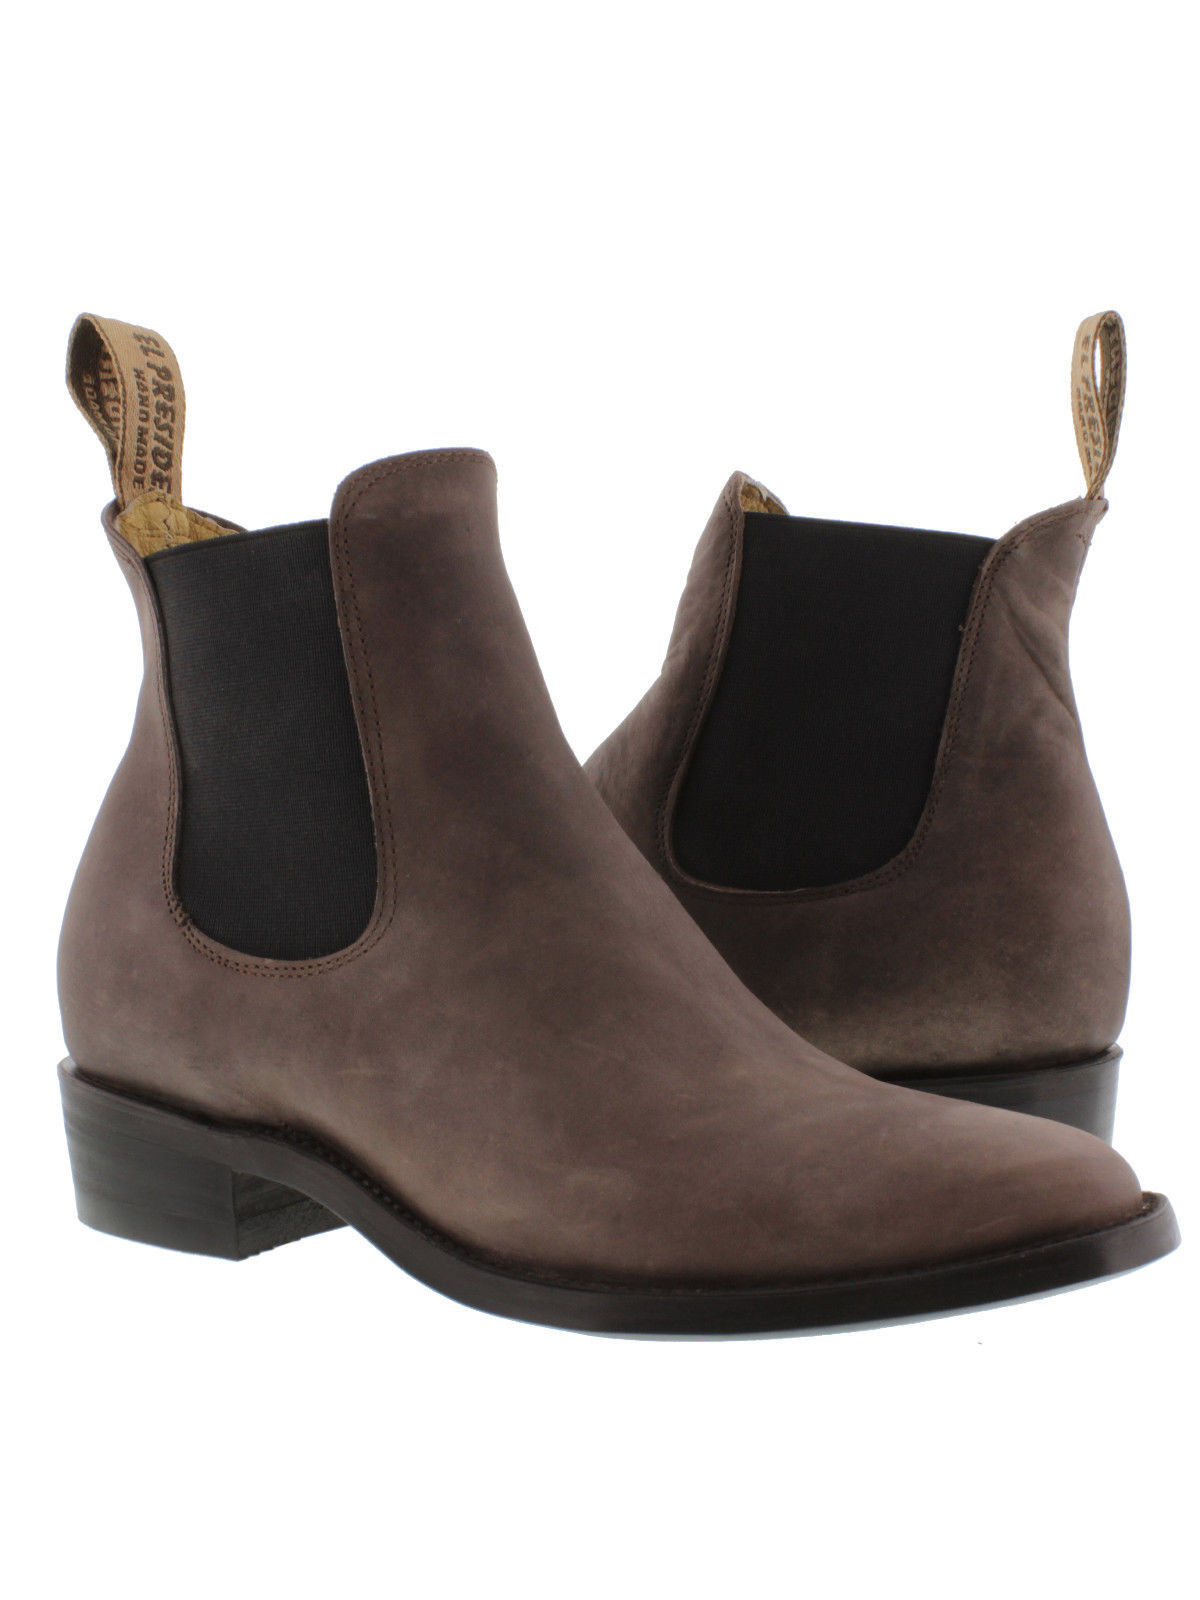 Mens classic brown pull on short ankle leather cowboy dress boots round toe